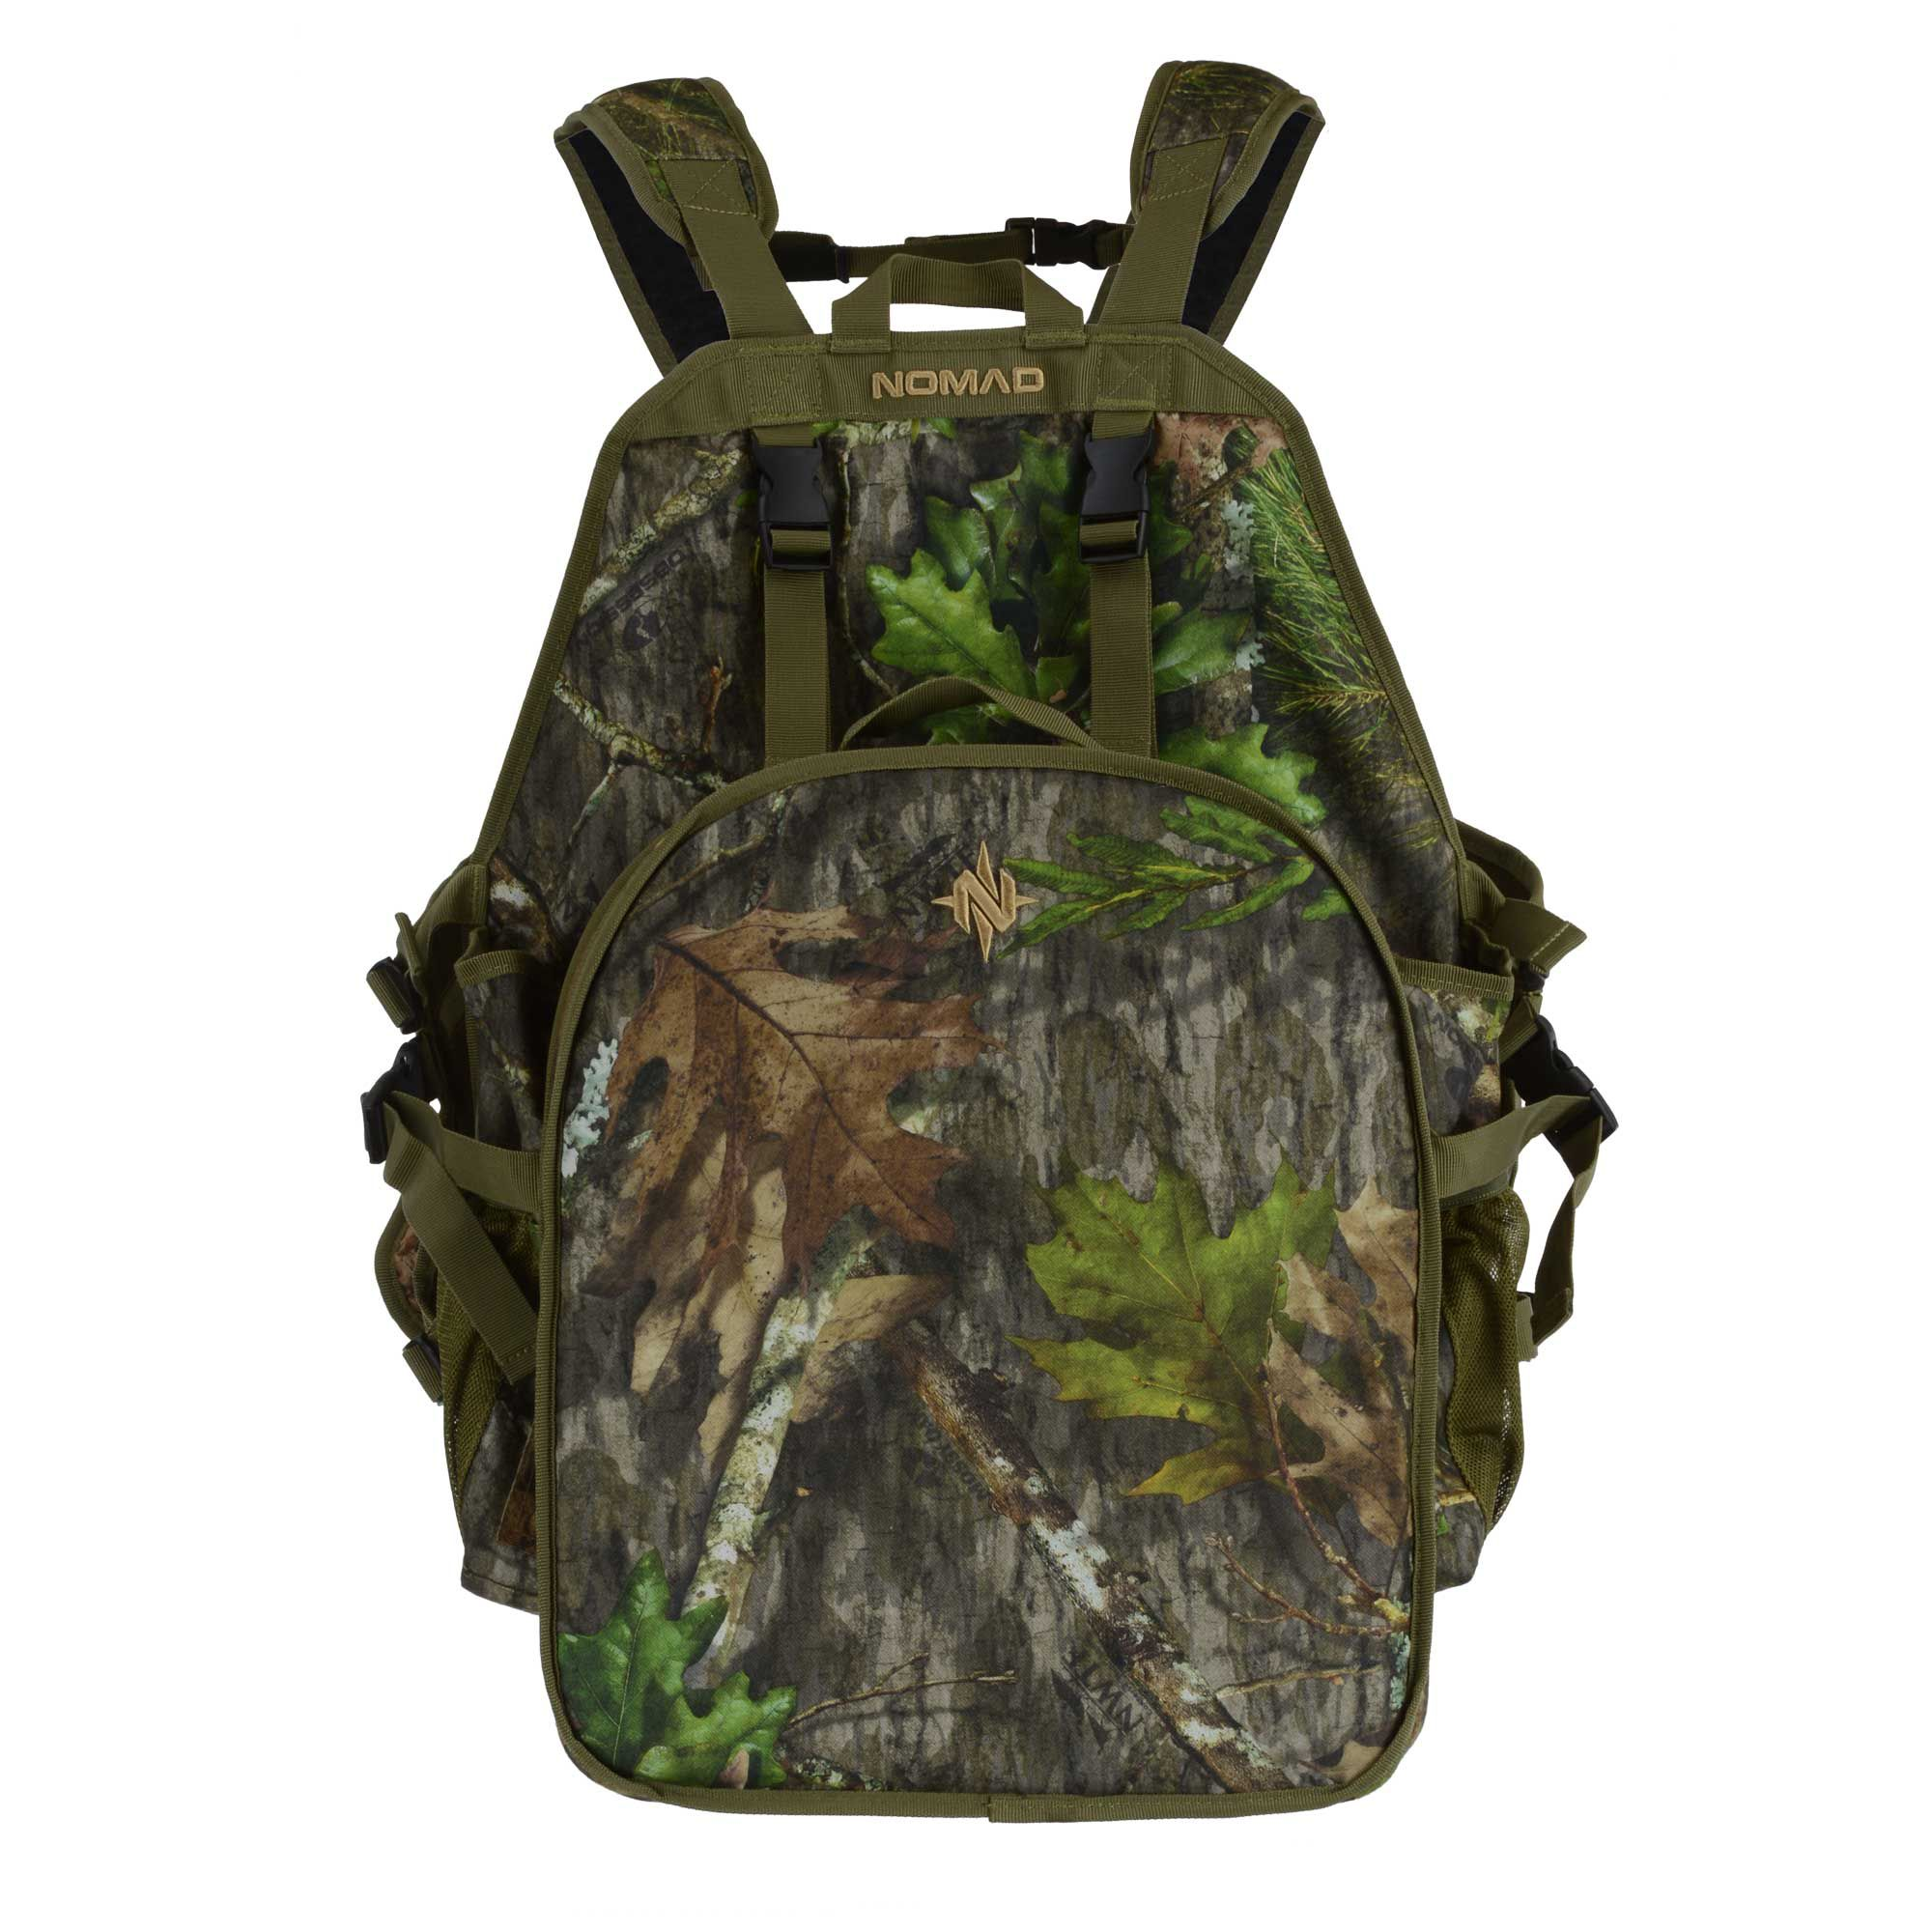 Nomad Turkey Hunting Vest, Men's, Mossy Oak Obession